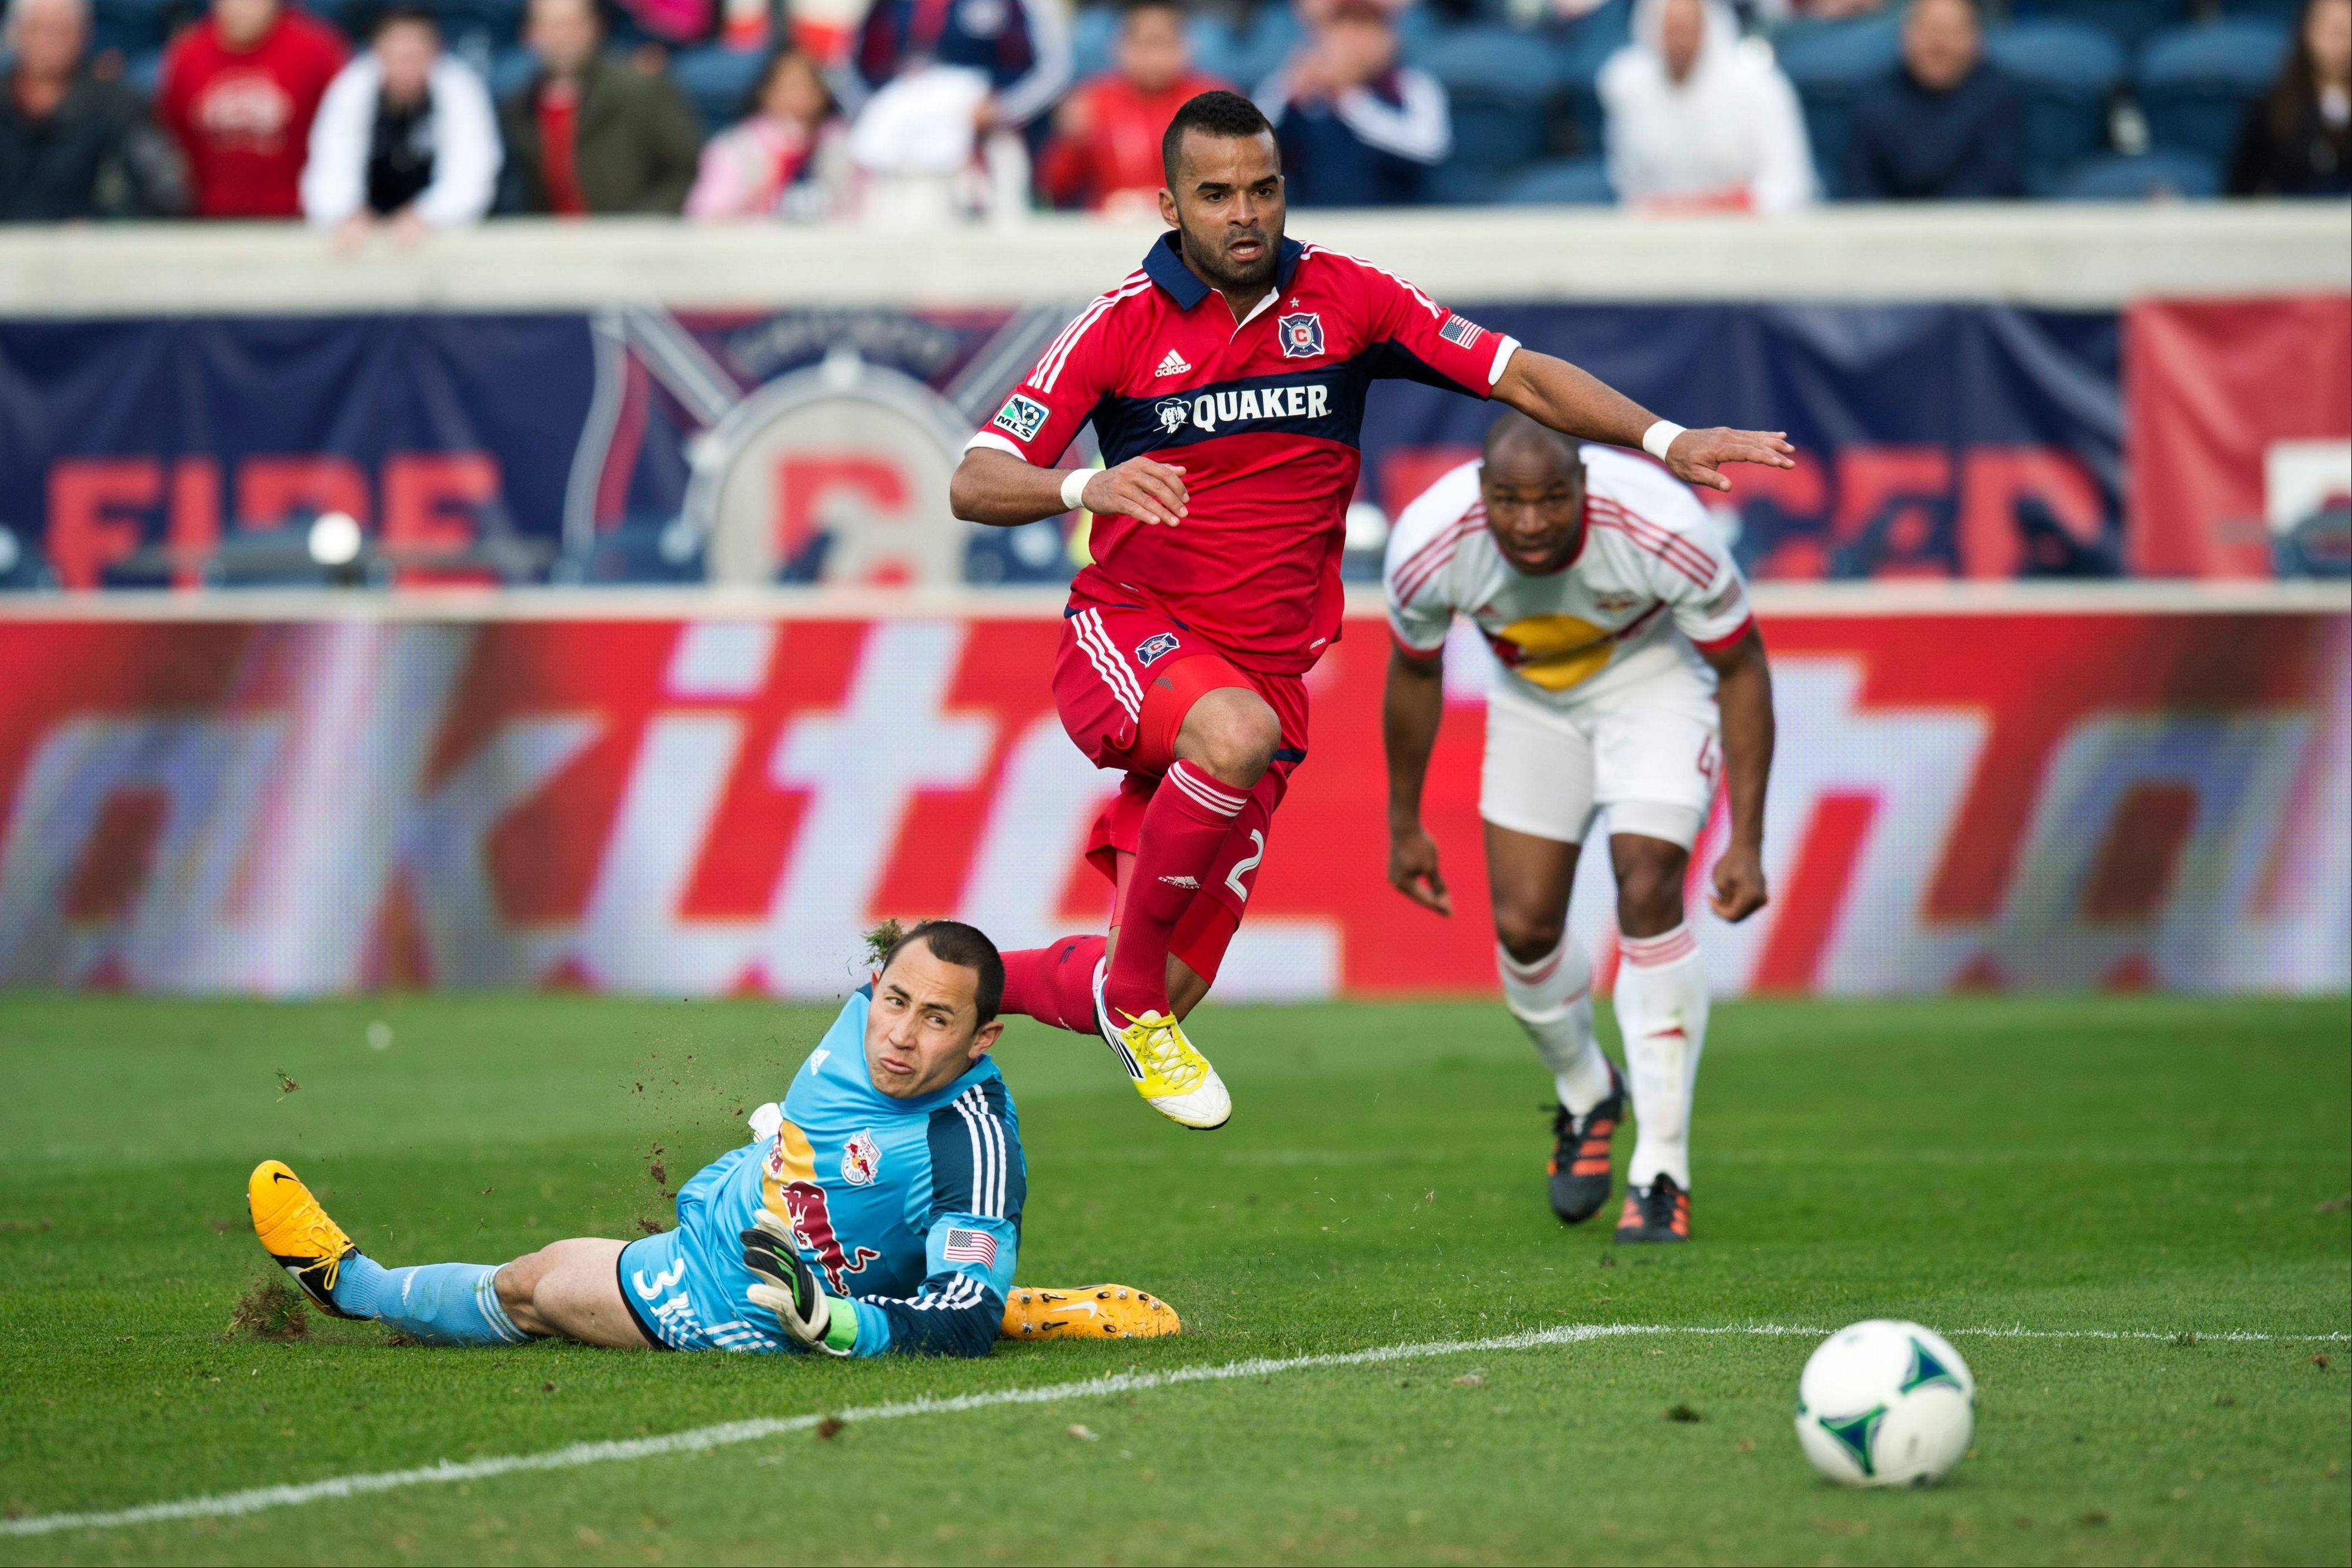 In this photo provided by the Chicago Fire, Chicago Fire forward Maicon Santos, center, scores past New York Red Bulls goalkeeper Luis Robles, left, as defender Jamison Olave watches during the second half of an MLS soccer match, Sunday, April 7, 2013, in Bridgeview, Ill. The Fire won 3-1. (AP Photo/Chicago Fire, Brian Kersey)